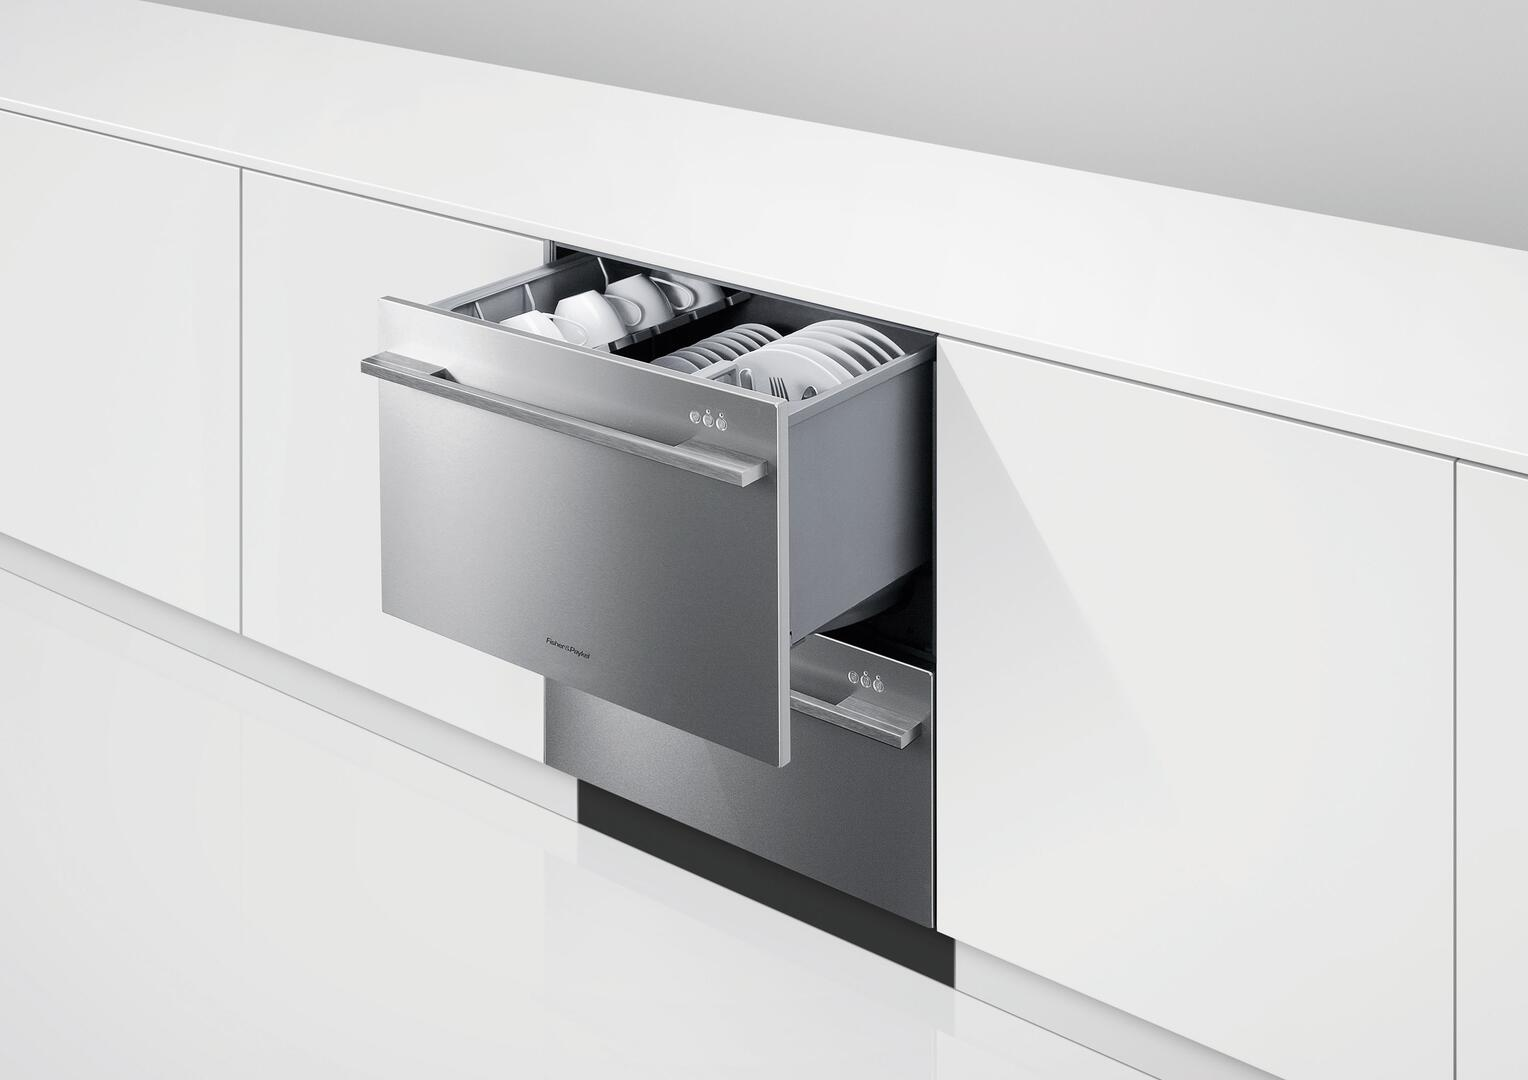 Fisher Paykel Dd24ddftx7 24 Inch Stainless Steel Drawers